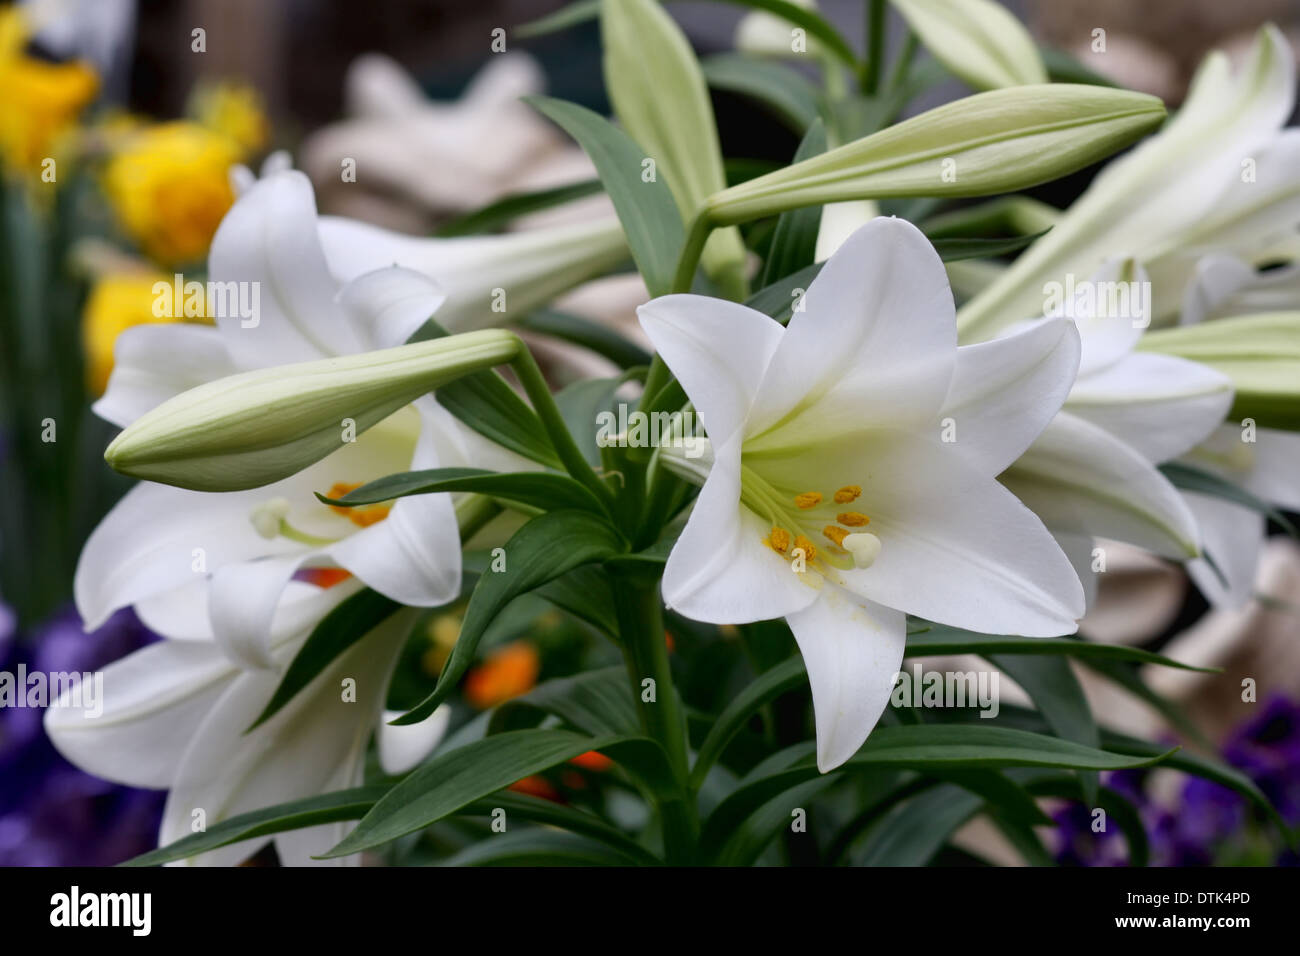 Potted spring flowers stock photos potted spring flowers stock potted easter lilies for sale at a garden center in the spring stock image mightylinksfo